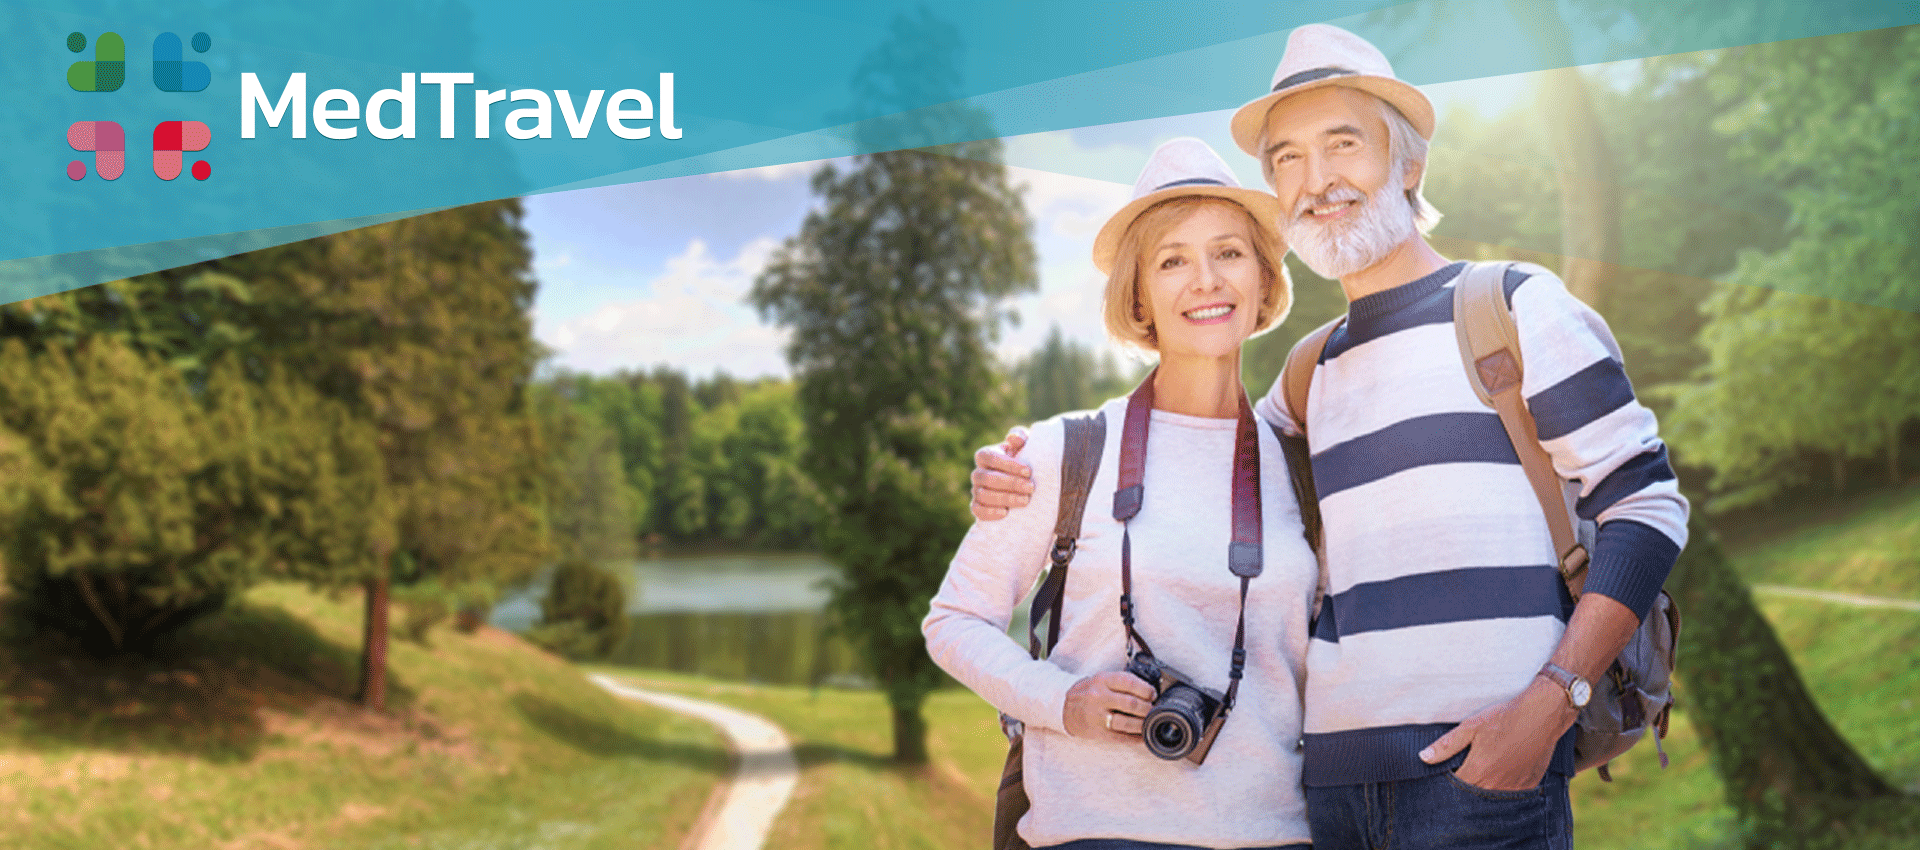 https://be-adv.com/wp-content/uploads/2021/03/medtravel-1920x850-1.png